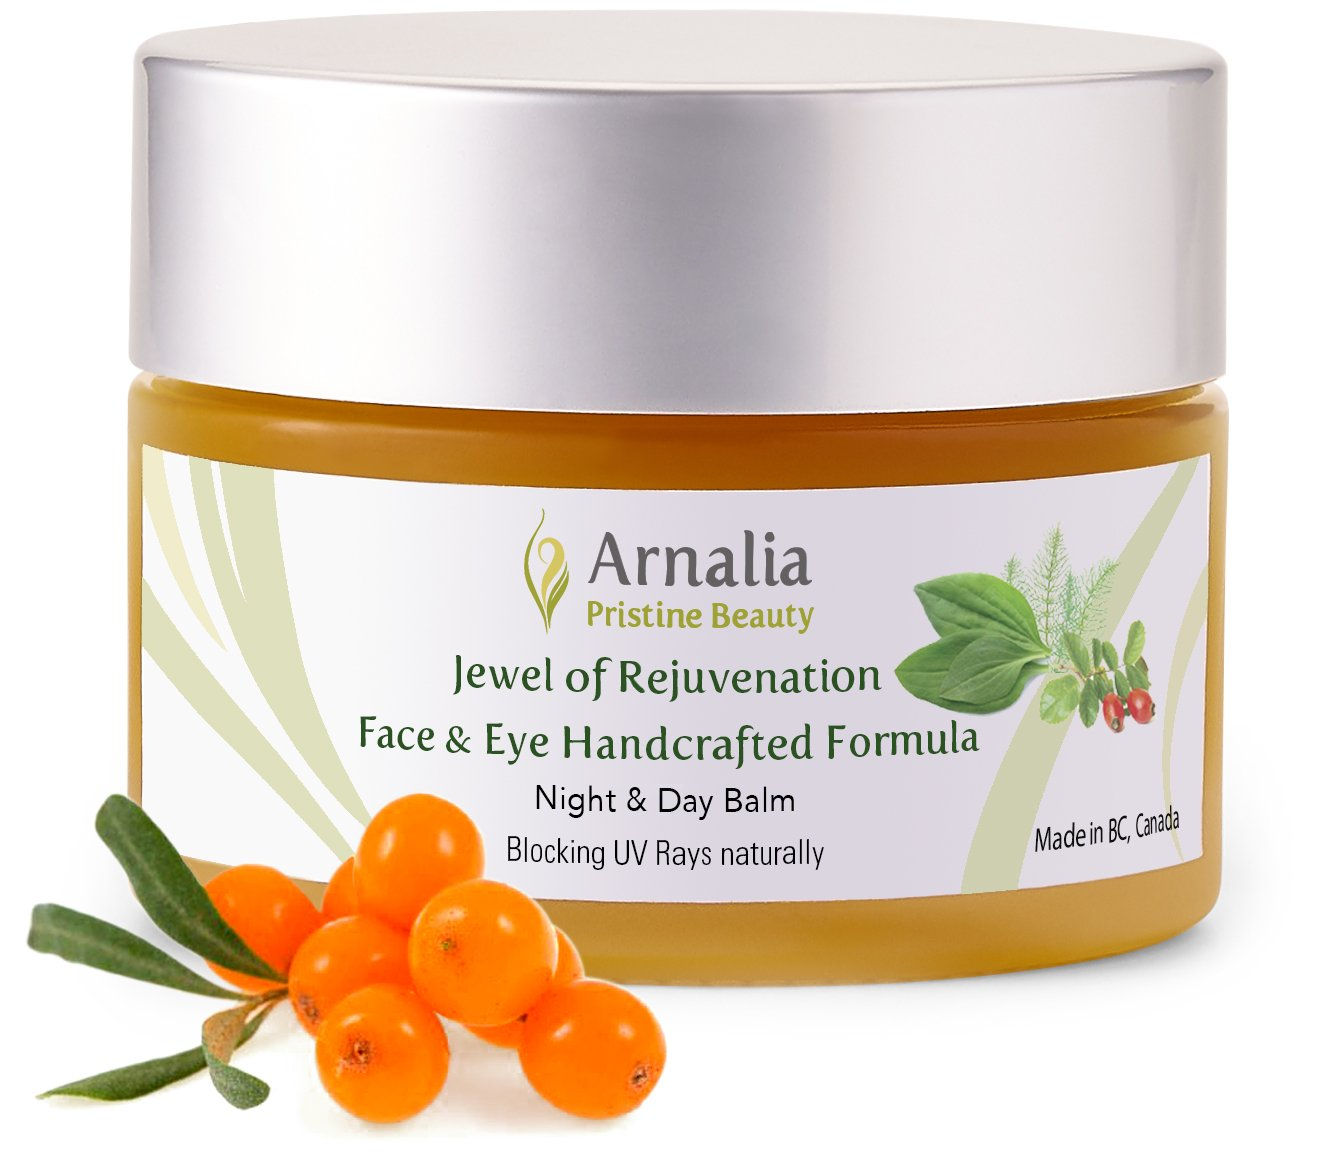 ARNALIA 100% Natural & Organic Wild Herbs, Eye & Face Emollient Anti Wrinkle, Anti Aging, Age Spot Moisturizer Cream, Firming, Hydrating, Under Eye, Boosts Collagen, Vitamins A & E from Sea Buckthorn, Siberian Cedar Nut (Pine Nut) & Rosehip